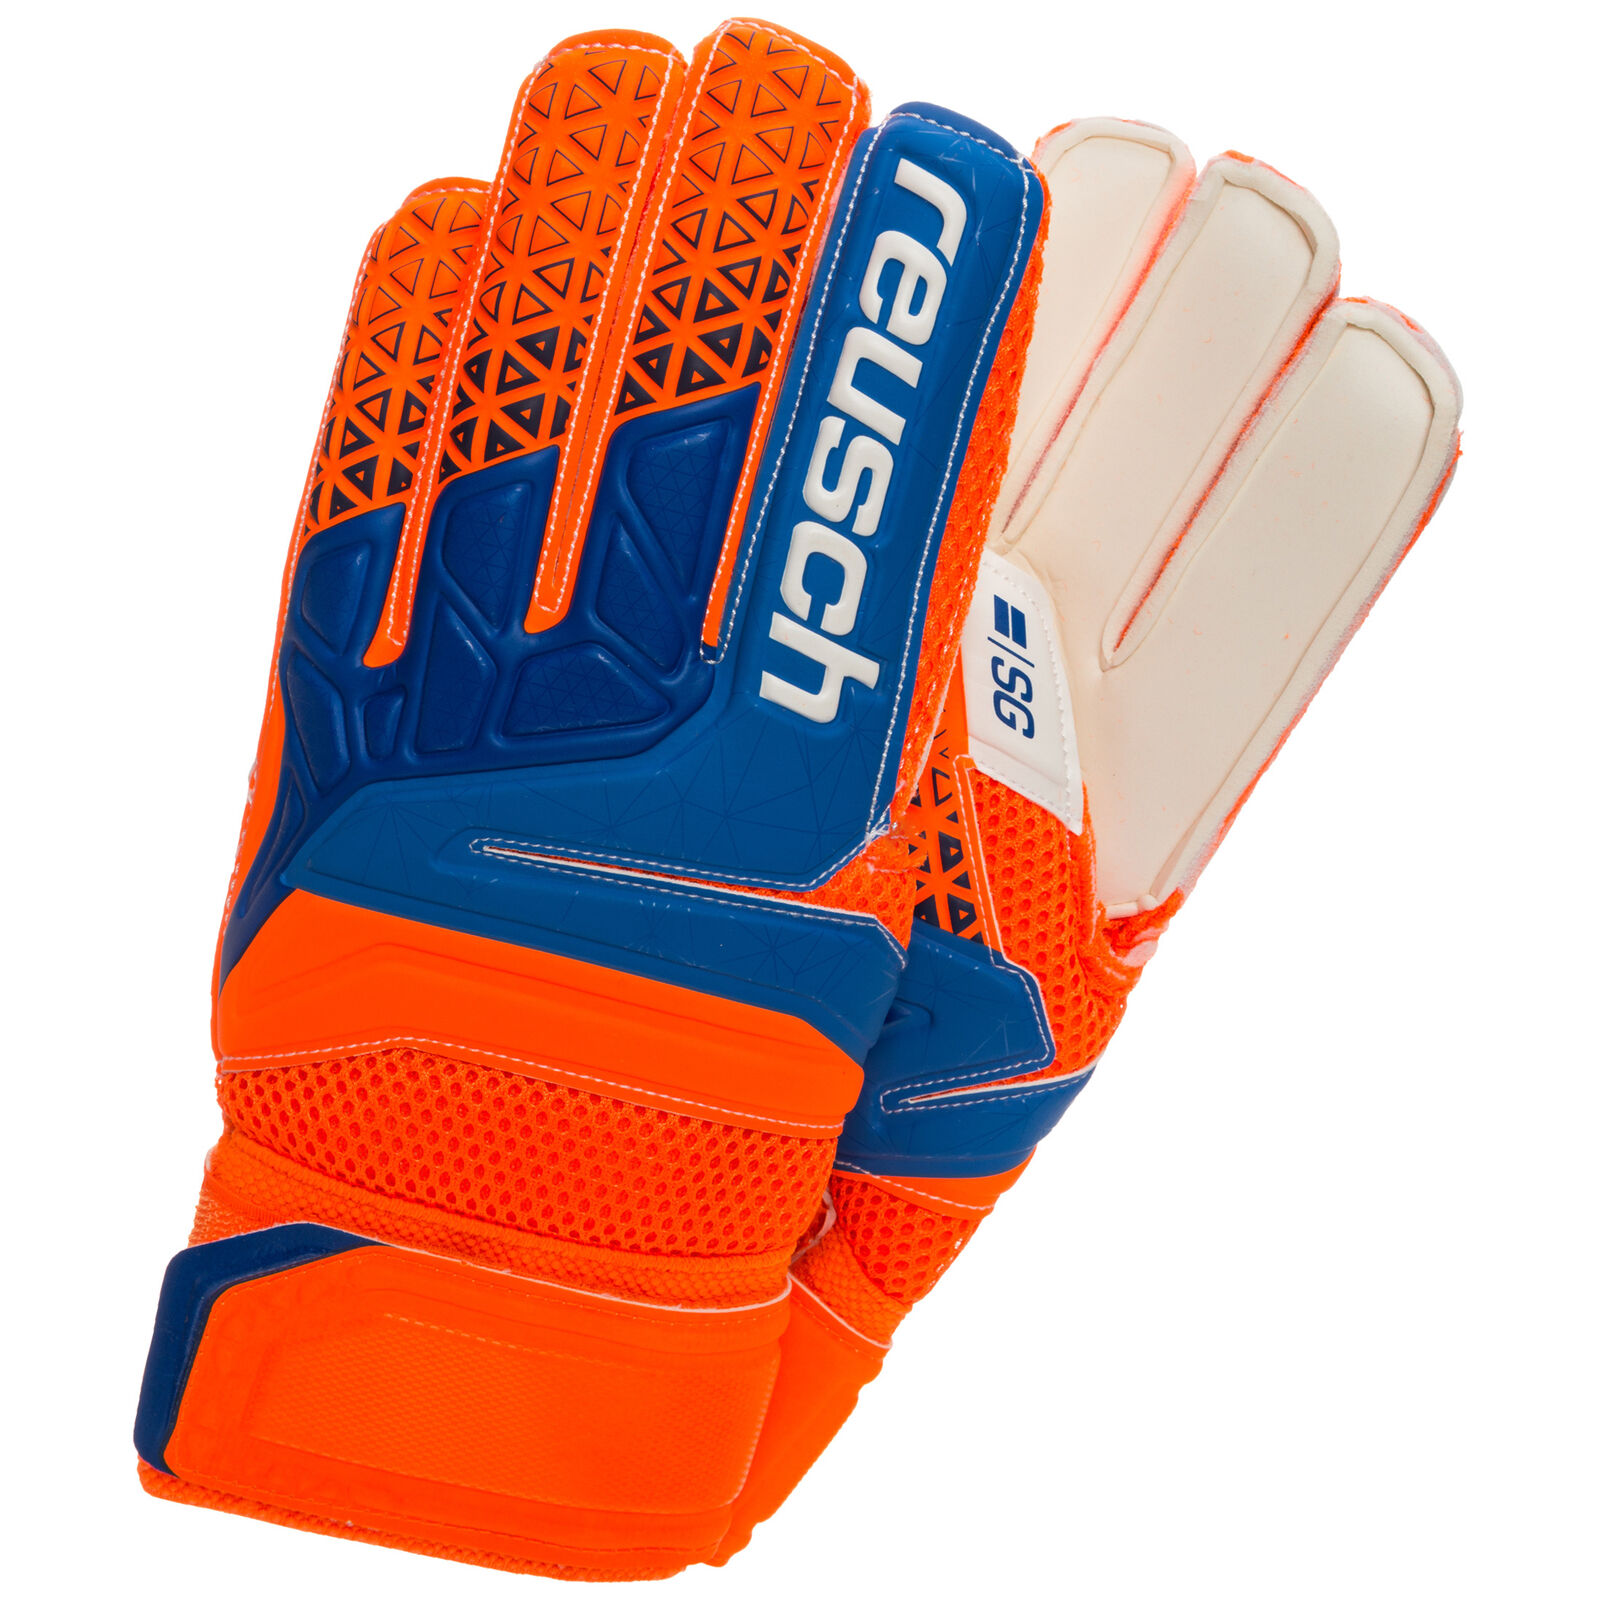 Reusch Prisma SG Finger Support Torwarthandschuh Herren Orange   blau NEU